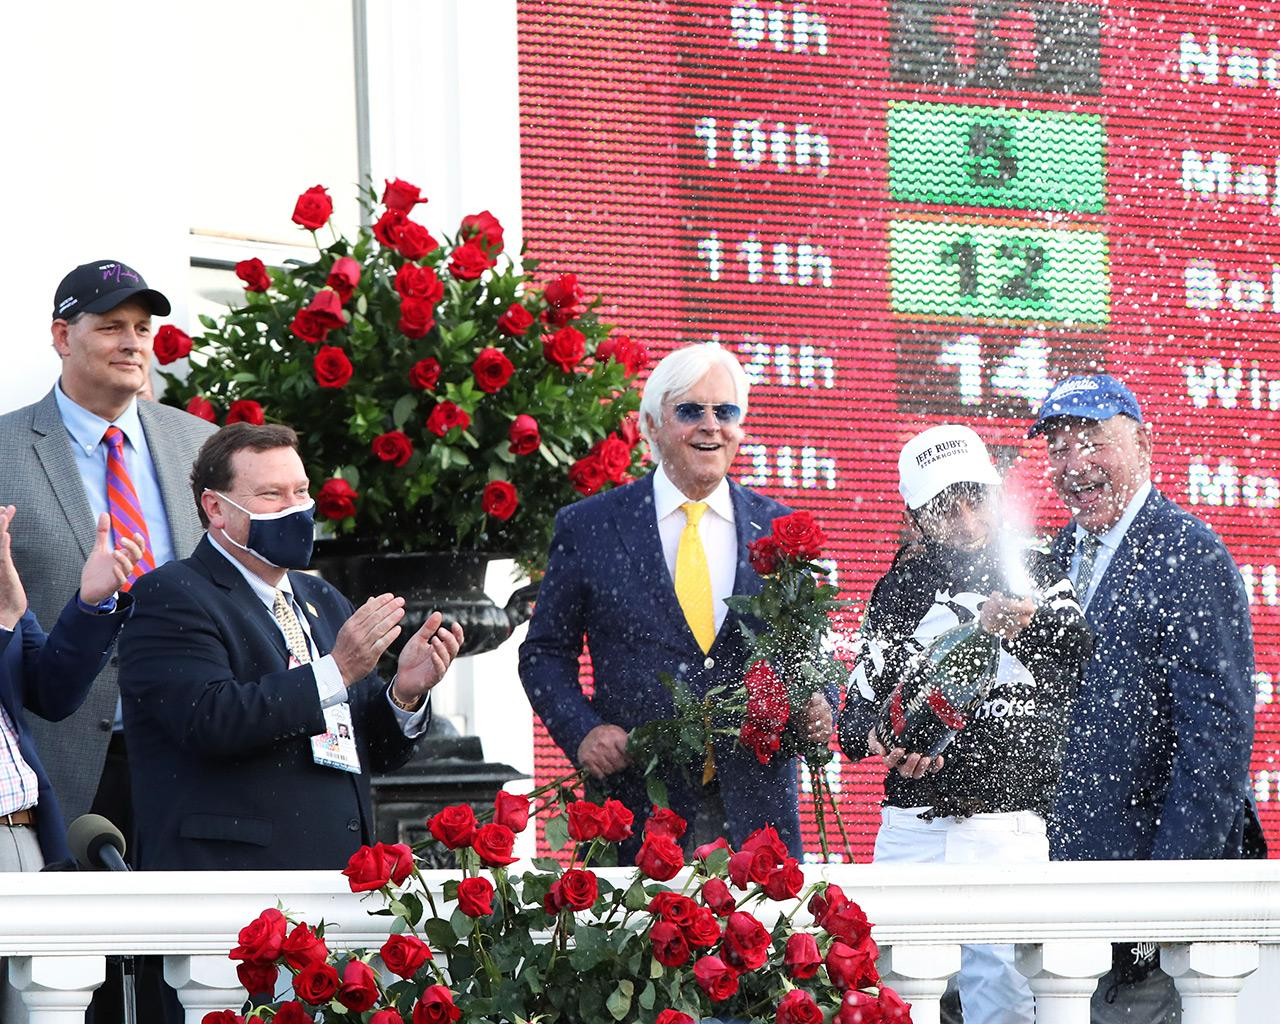 AUTHENTIC---The-Kentucky-Derby---146th-Running---09-05-20---R14---CD---Champagne-02